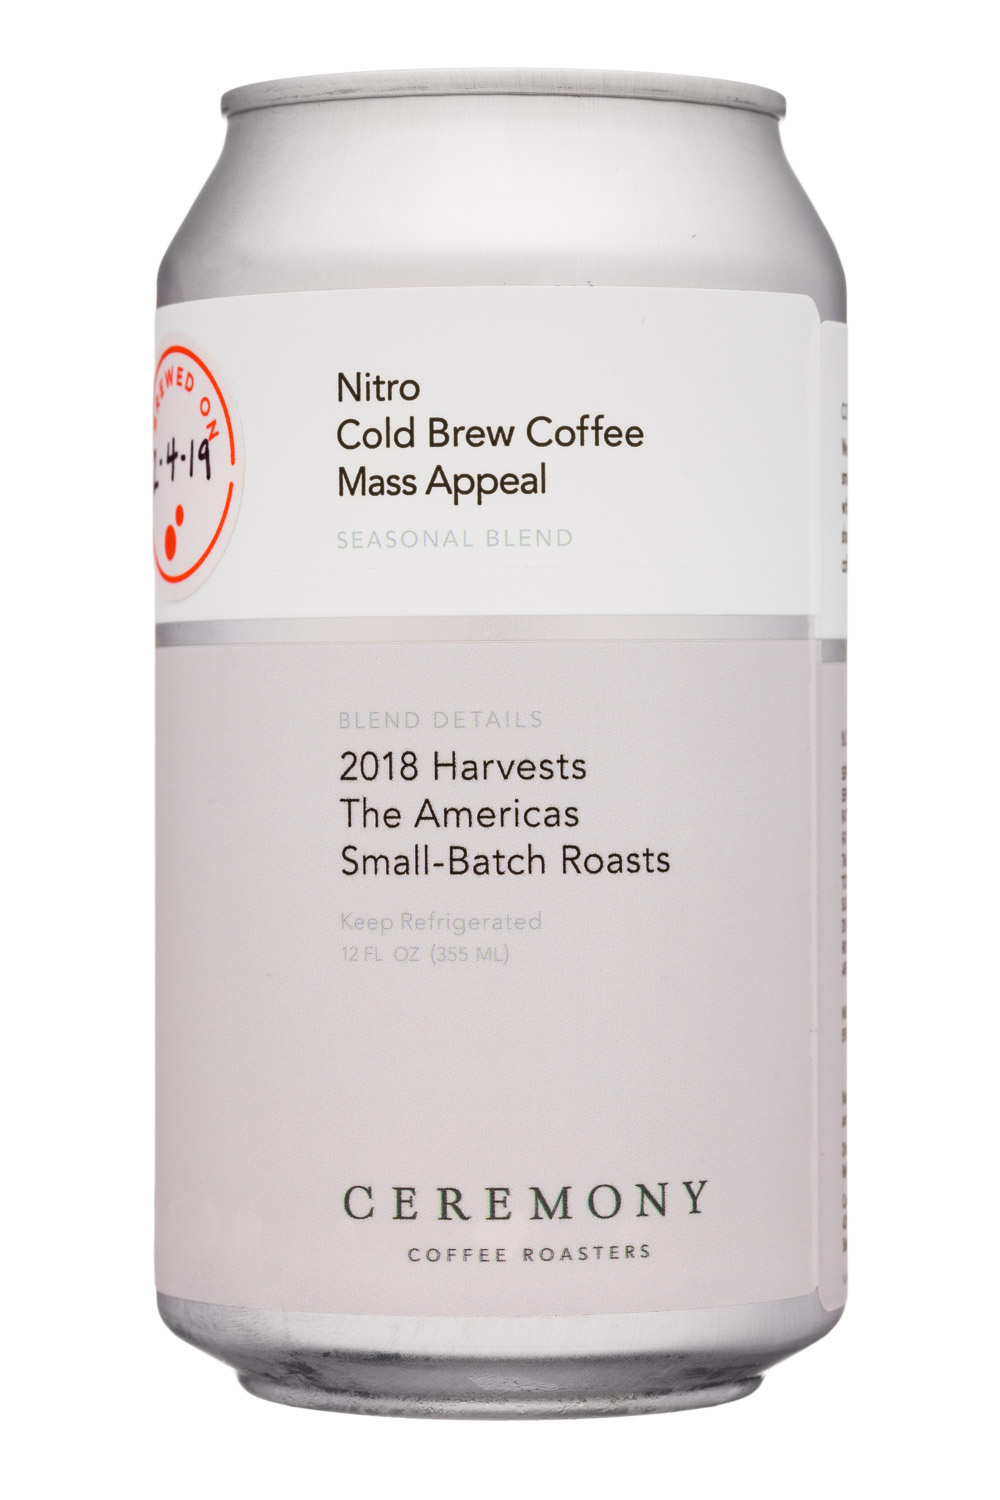 Nitro Cold Brew Coffee Mass Appeal